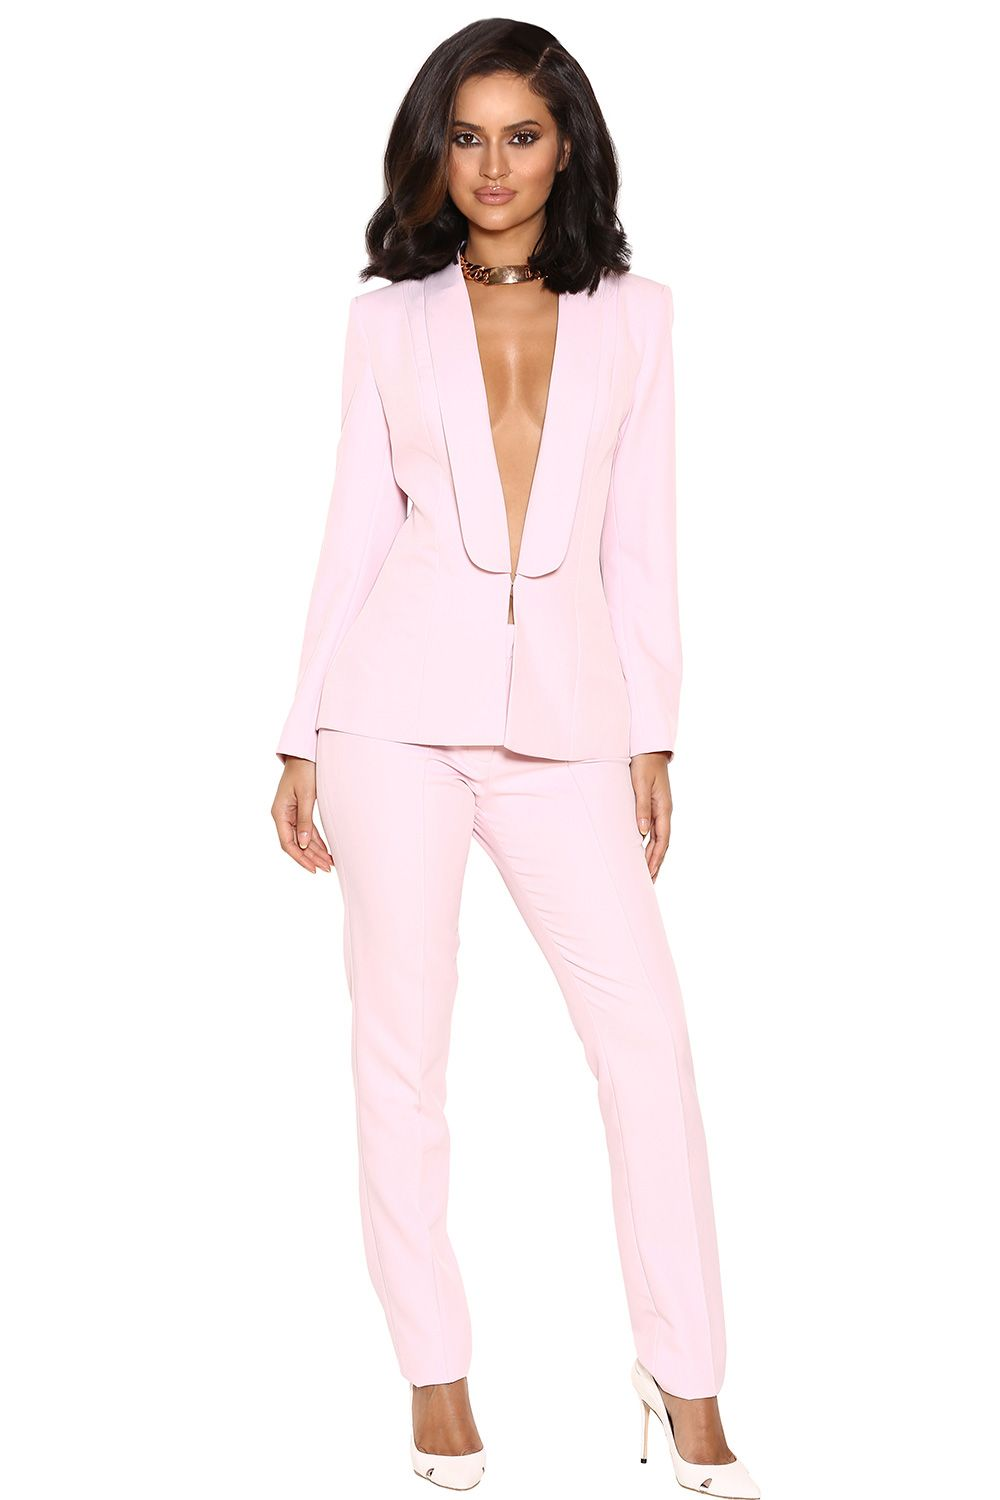 33d66a6790f97 Tristana Light Pink Crepe Trouser Suit